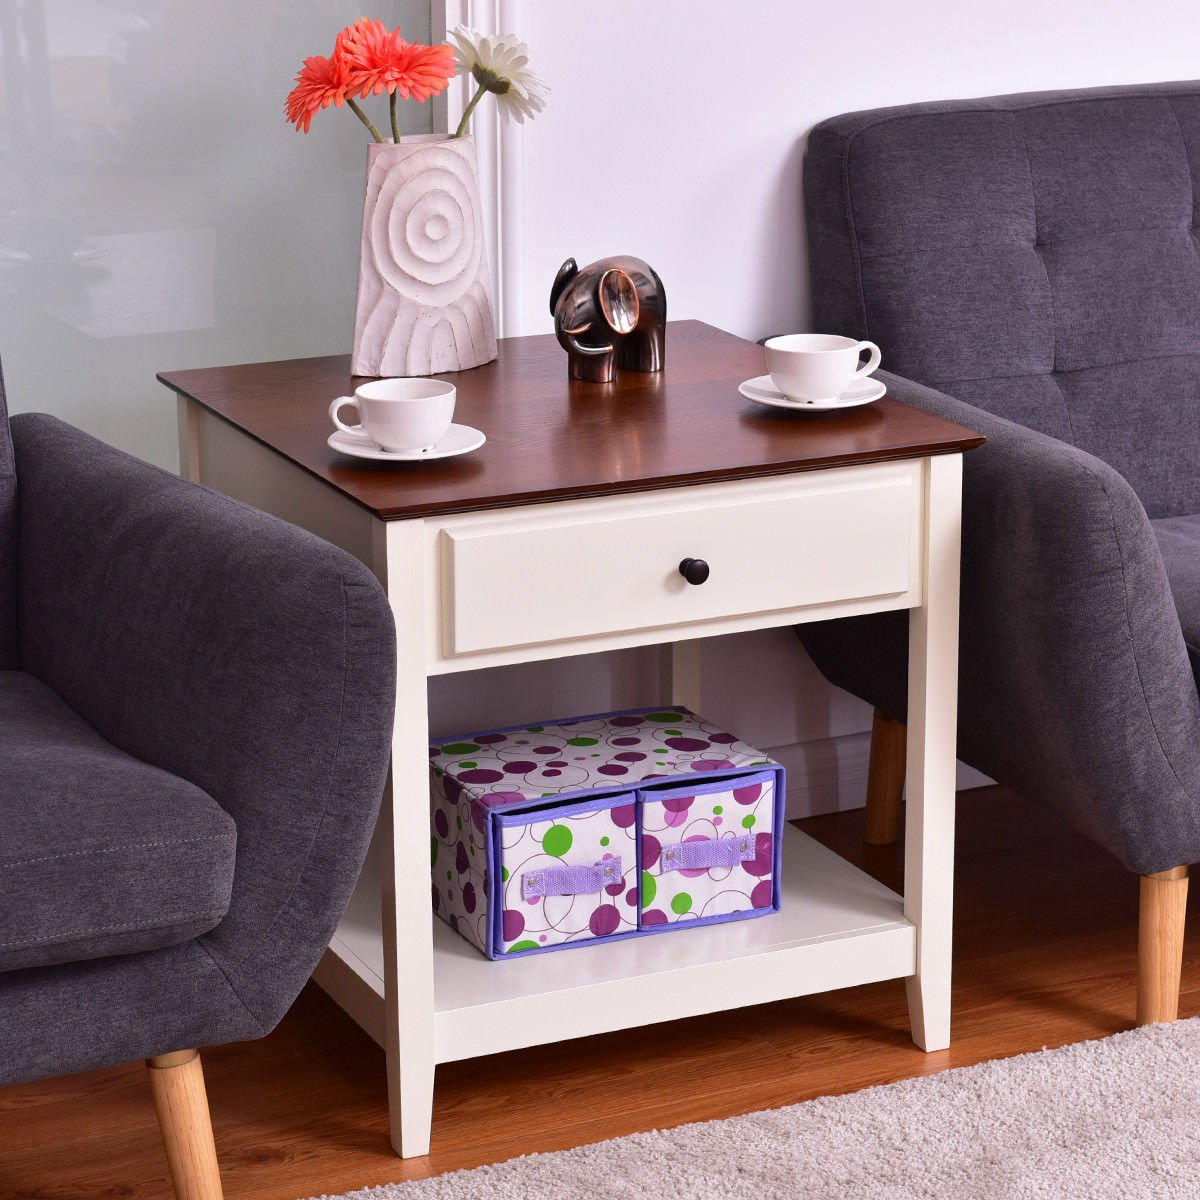 Giantex Wood End Table with Drawer Storage Shelf Night Stand Coffee Table, Walnut White